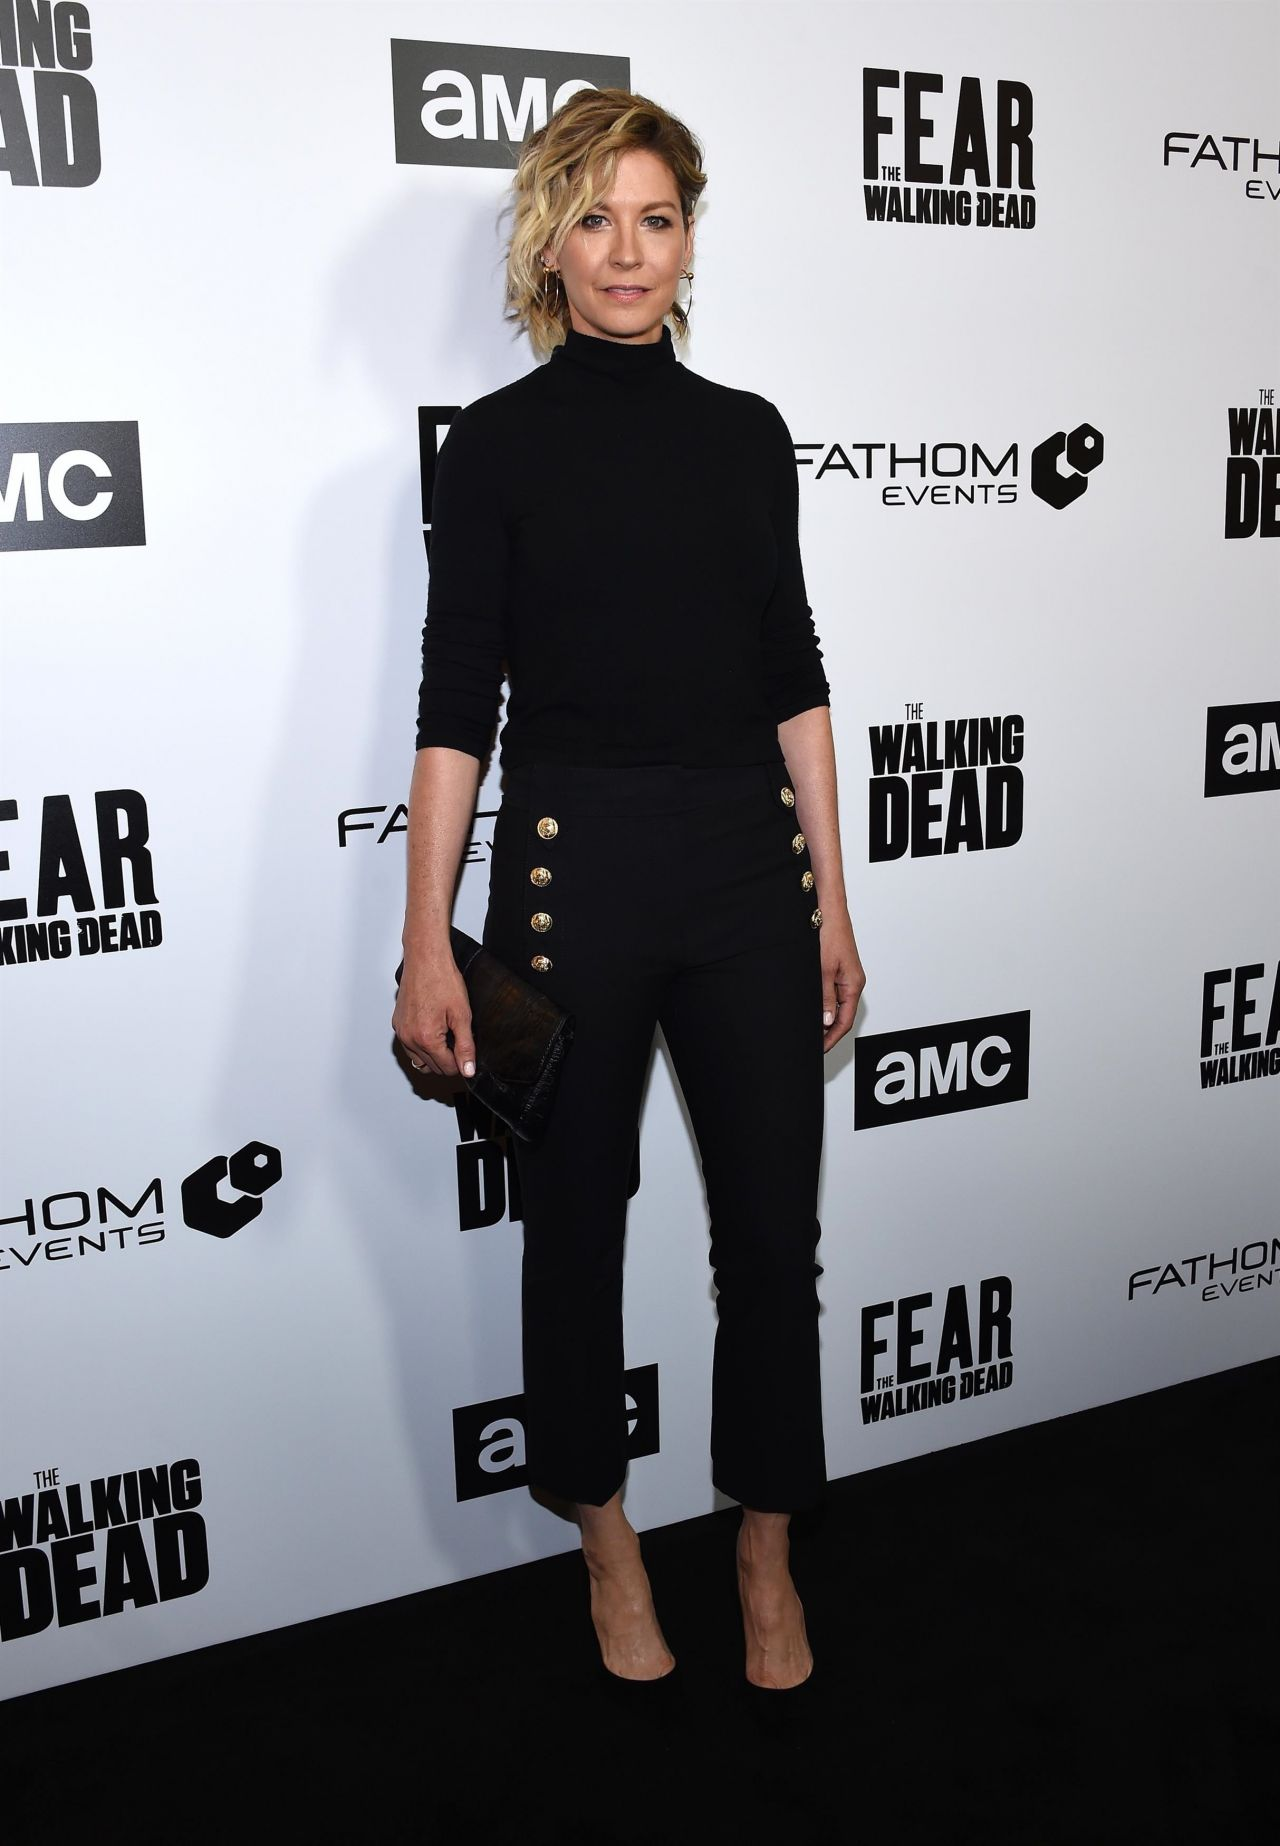 https://celebmafia.com/wp-content/uploads/2018/04/jenna-elfman-fyc-the-walking-dead-and-fear-the-walking-dead-in-la-1.jpg